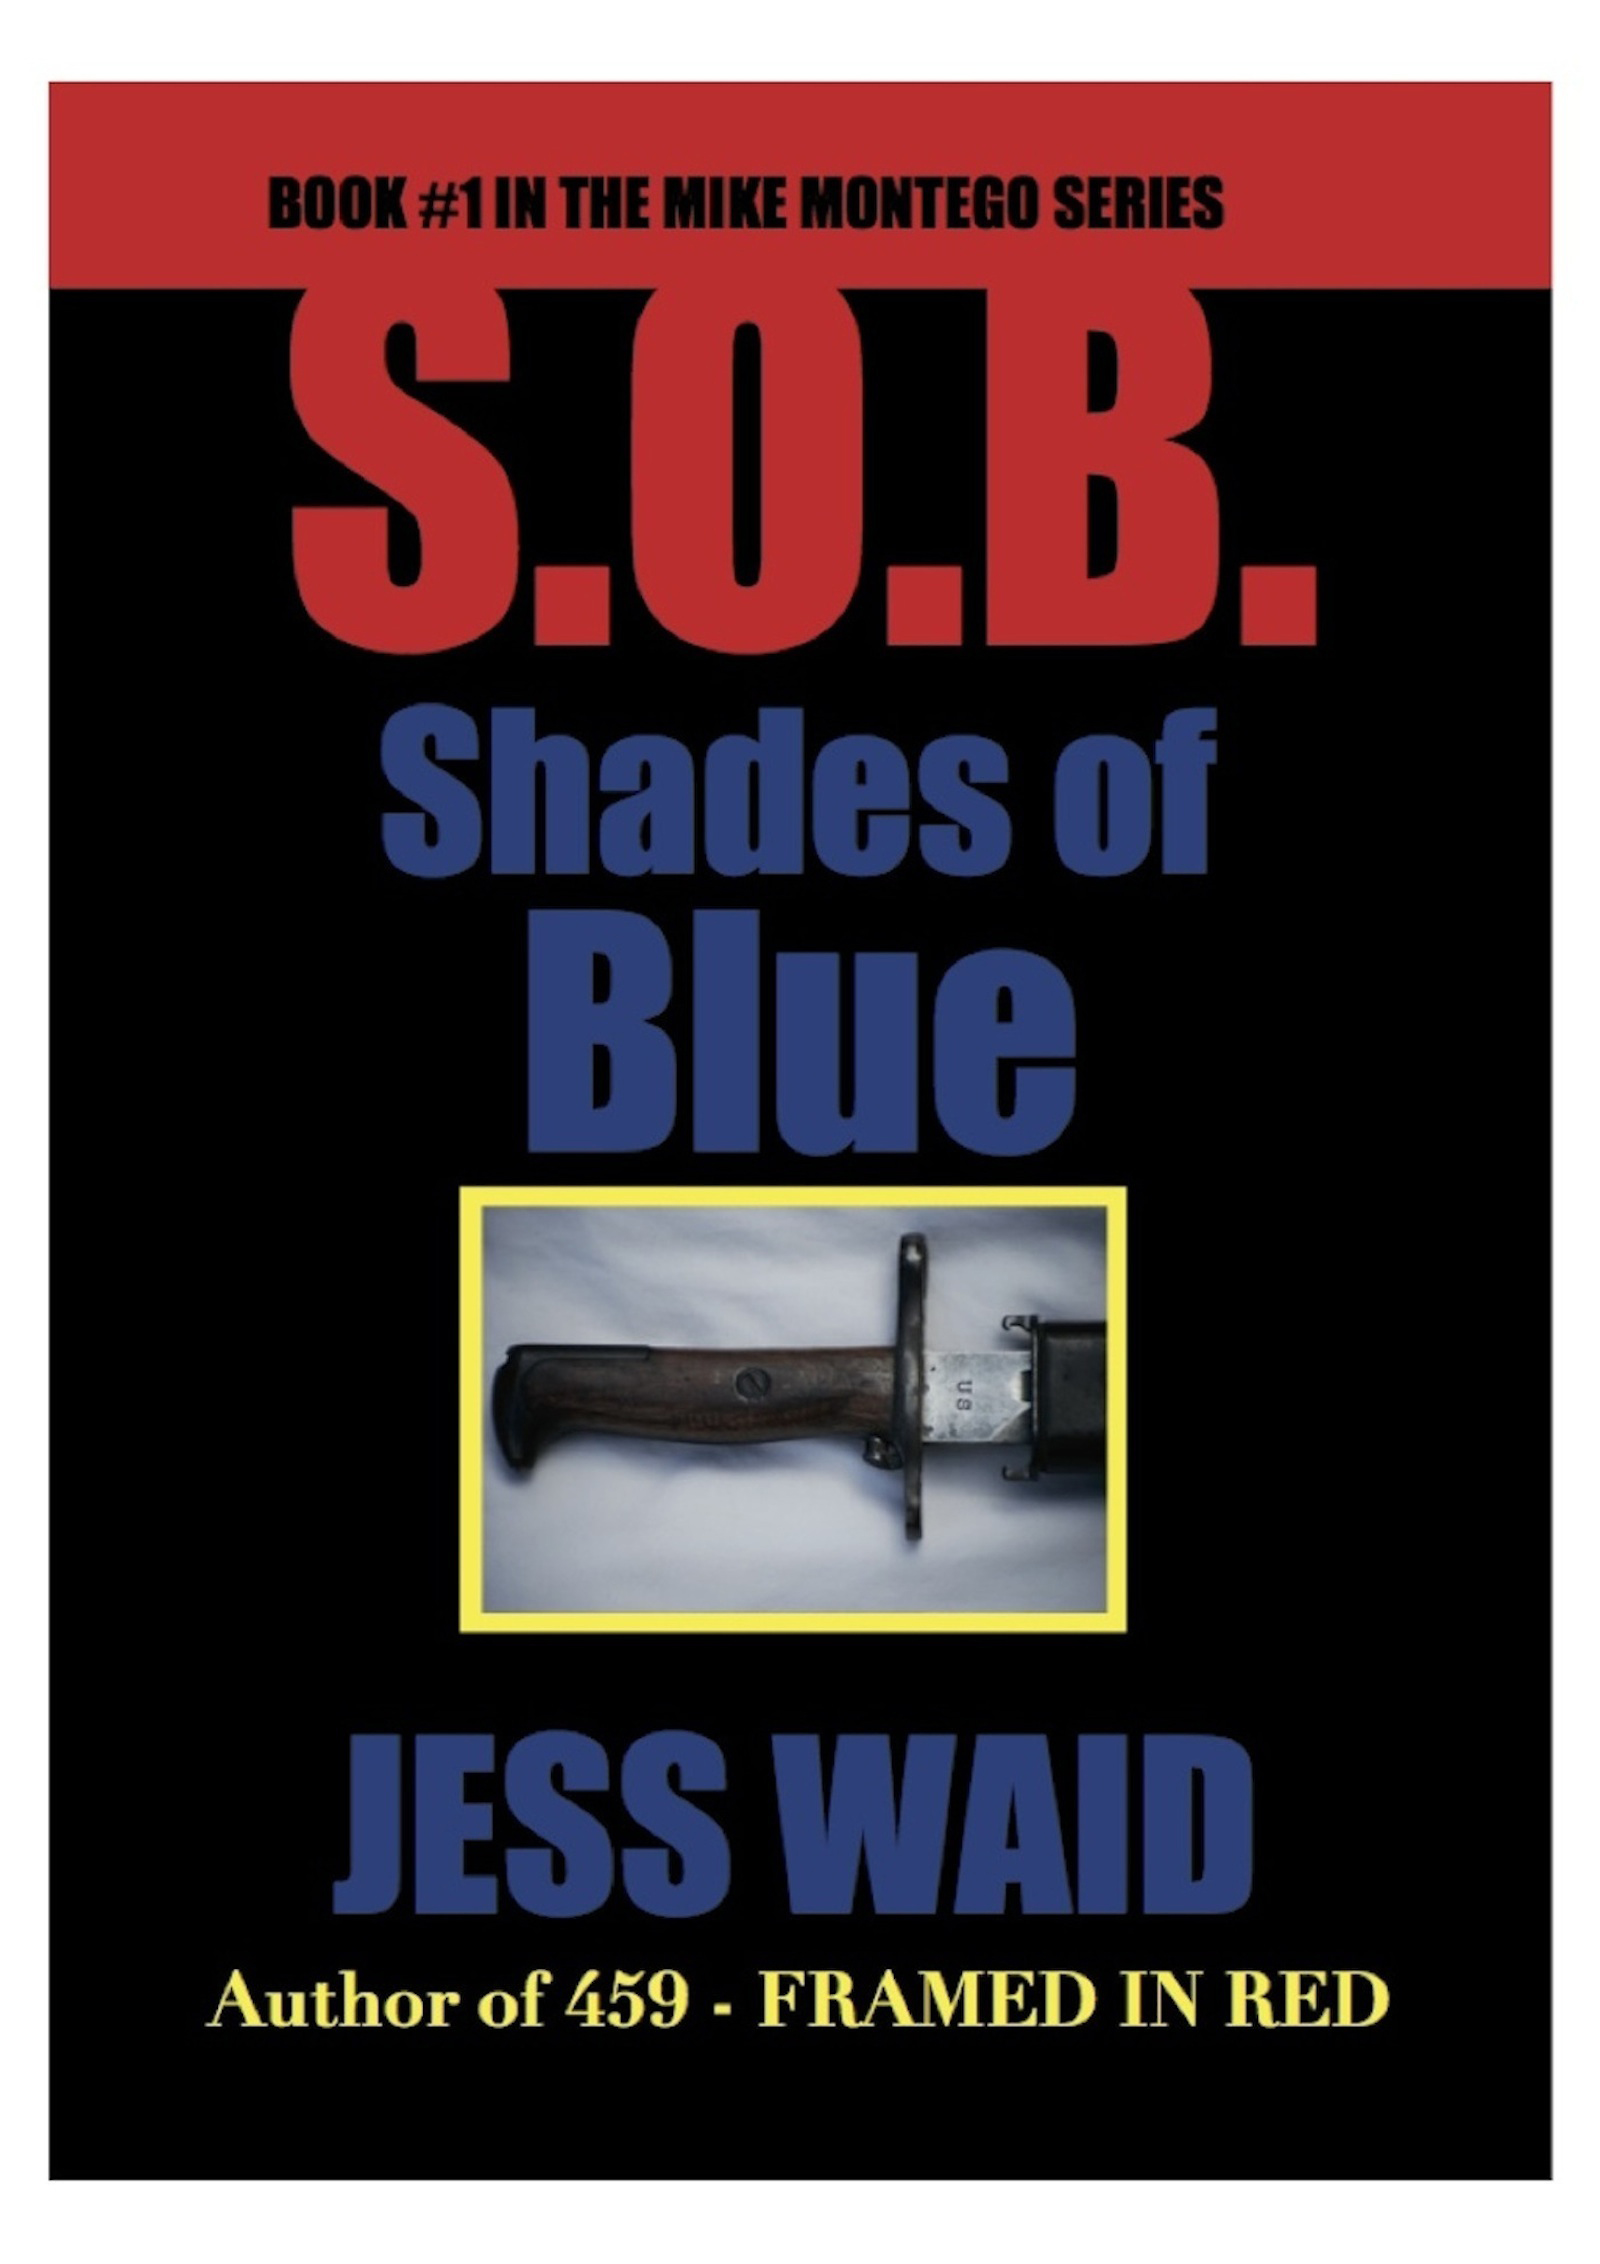 Shades of Blue (Book #1 in the Mike Montego Series) Image